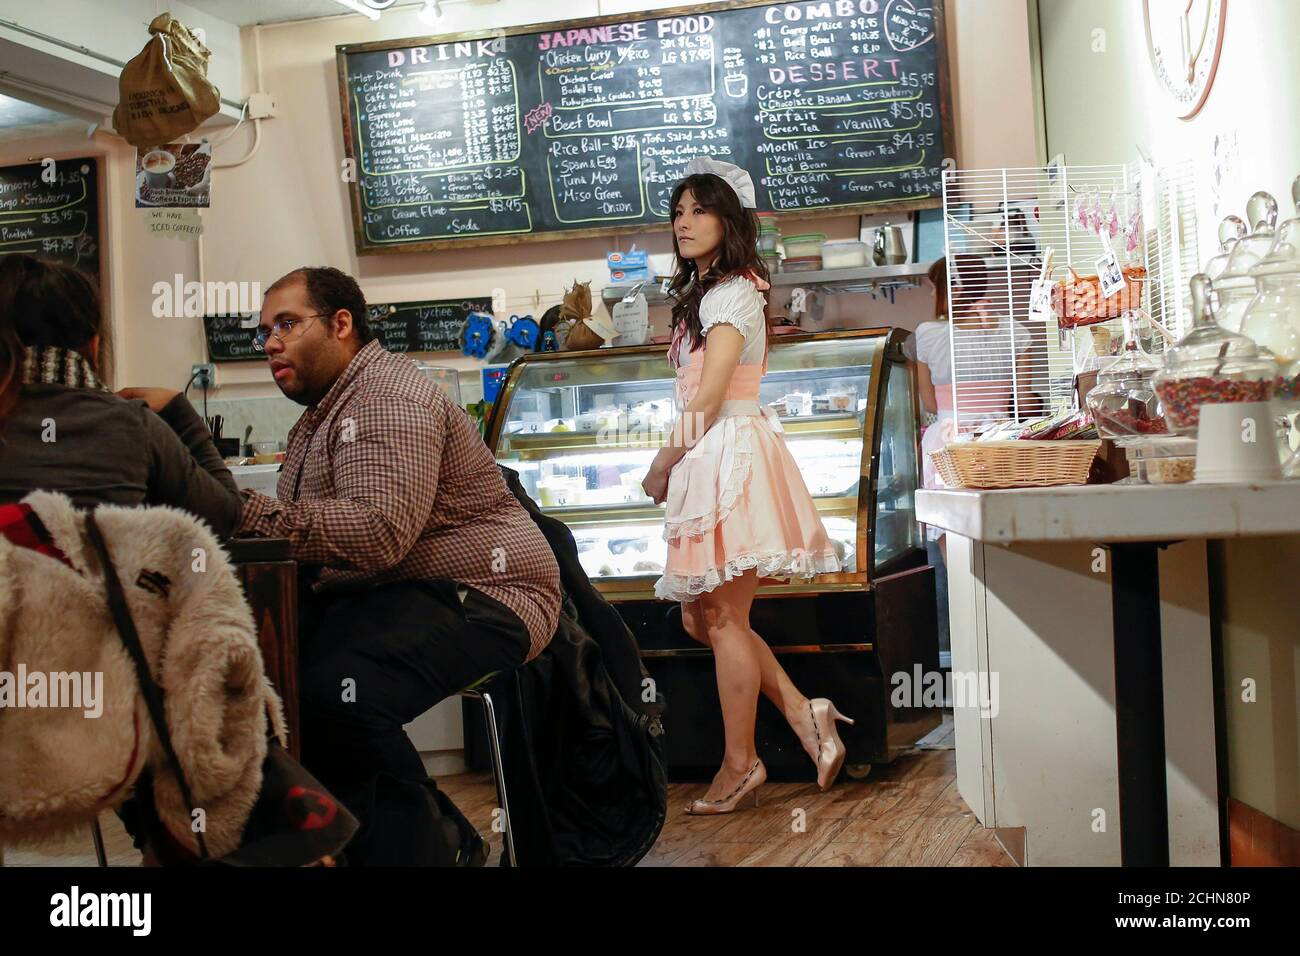 Page 2 Maid Cafe High Resolution Stock Photography And Images Alamy